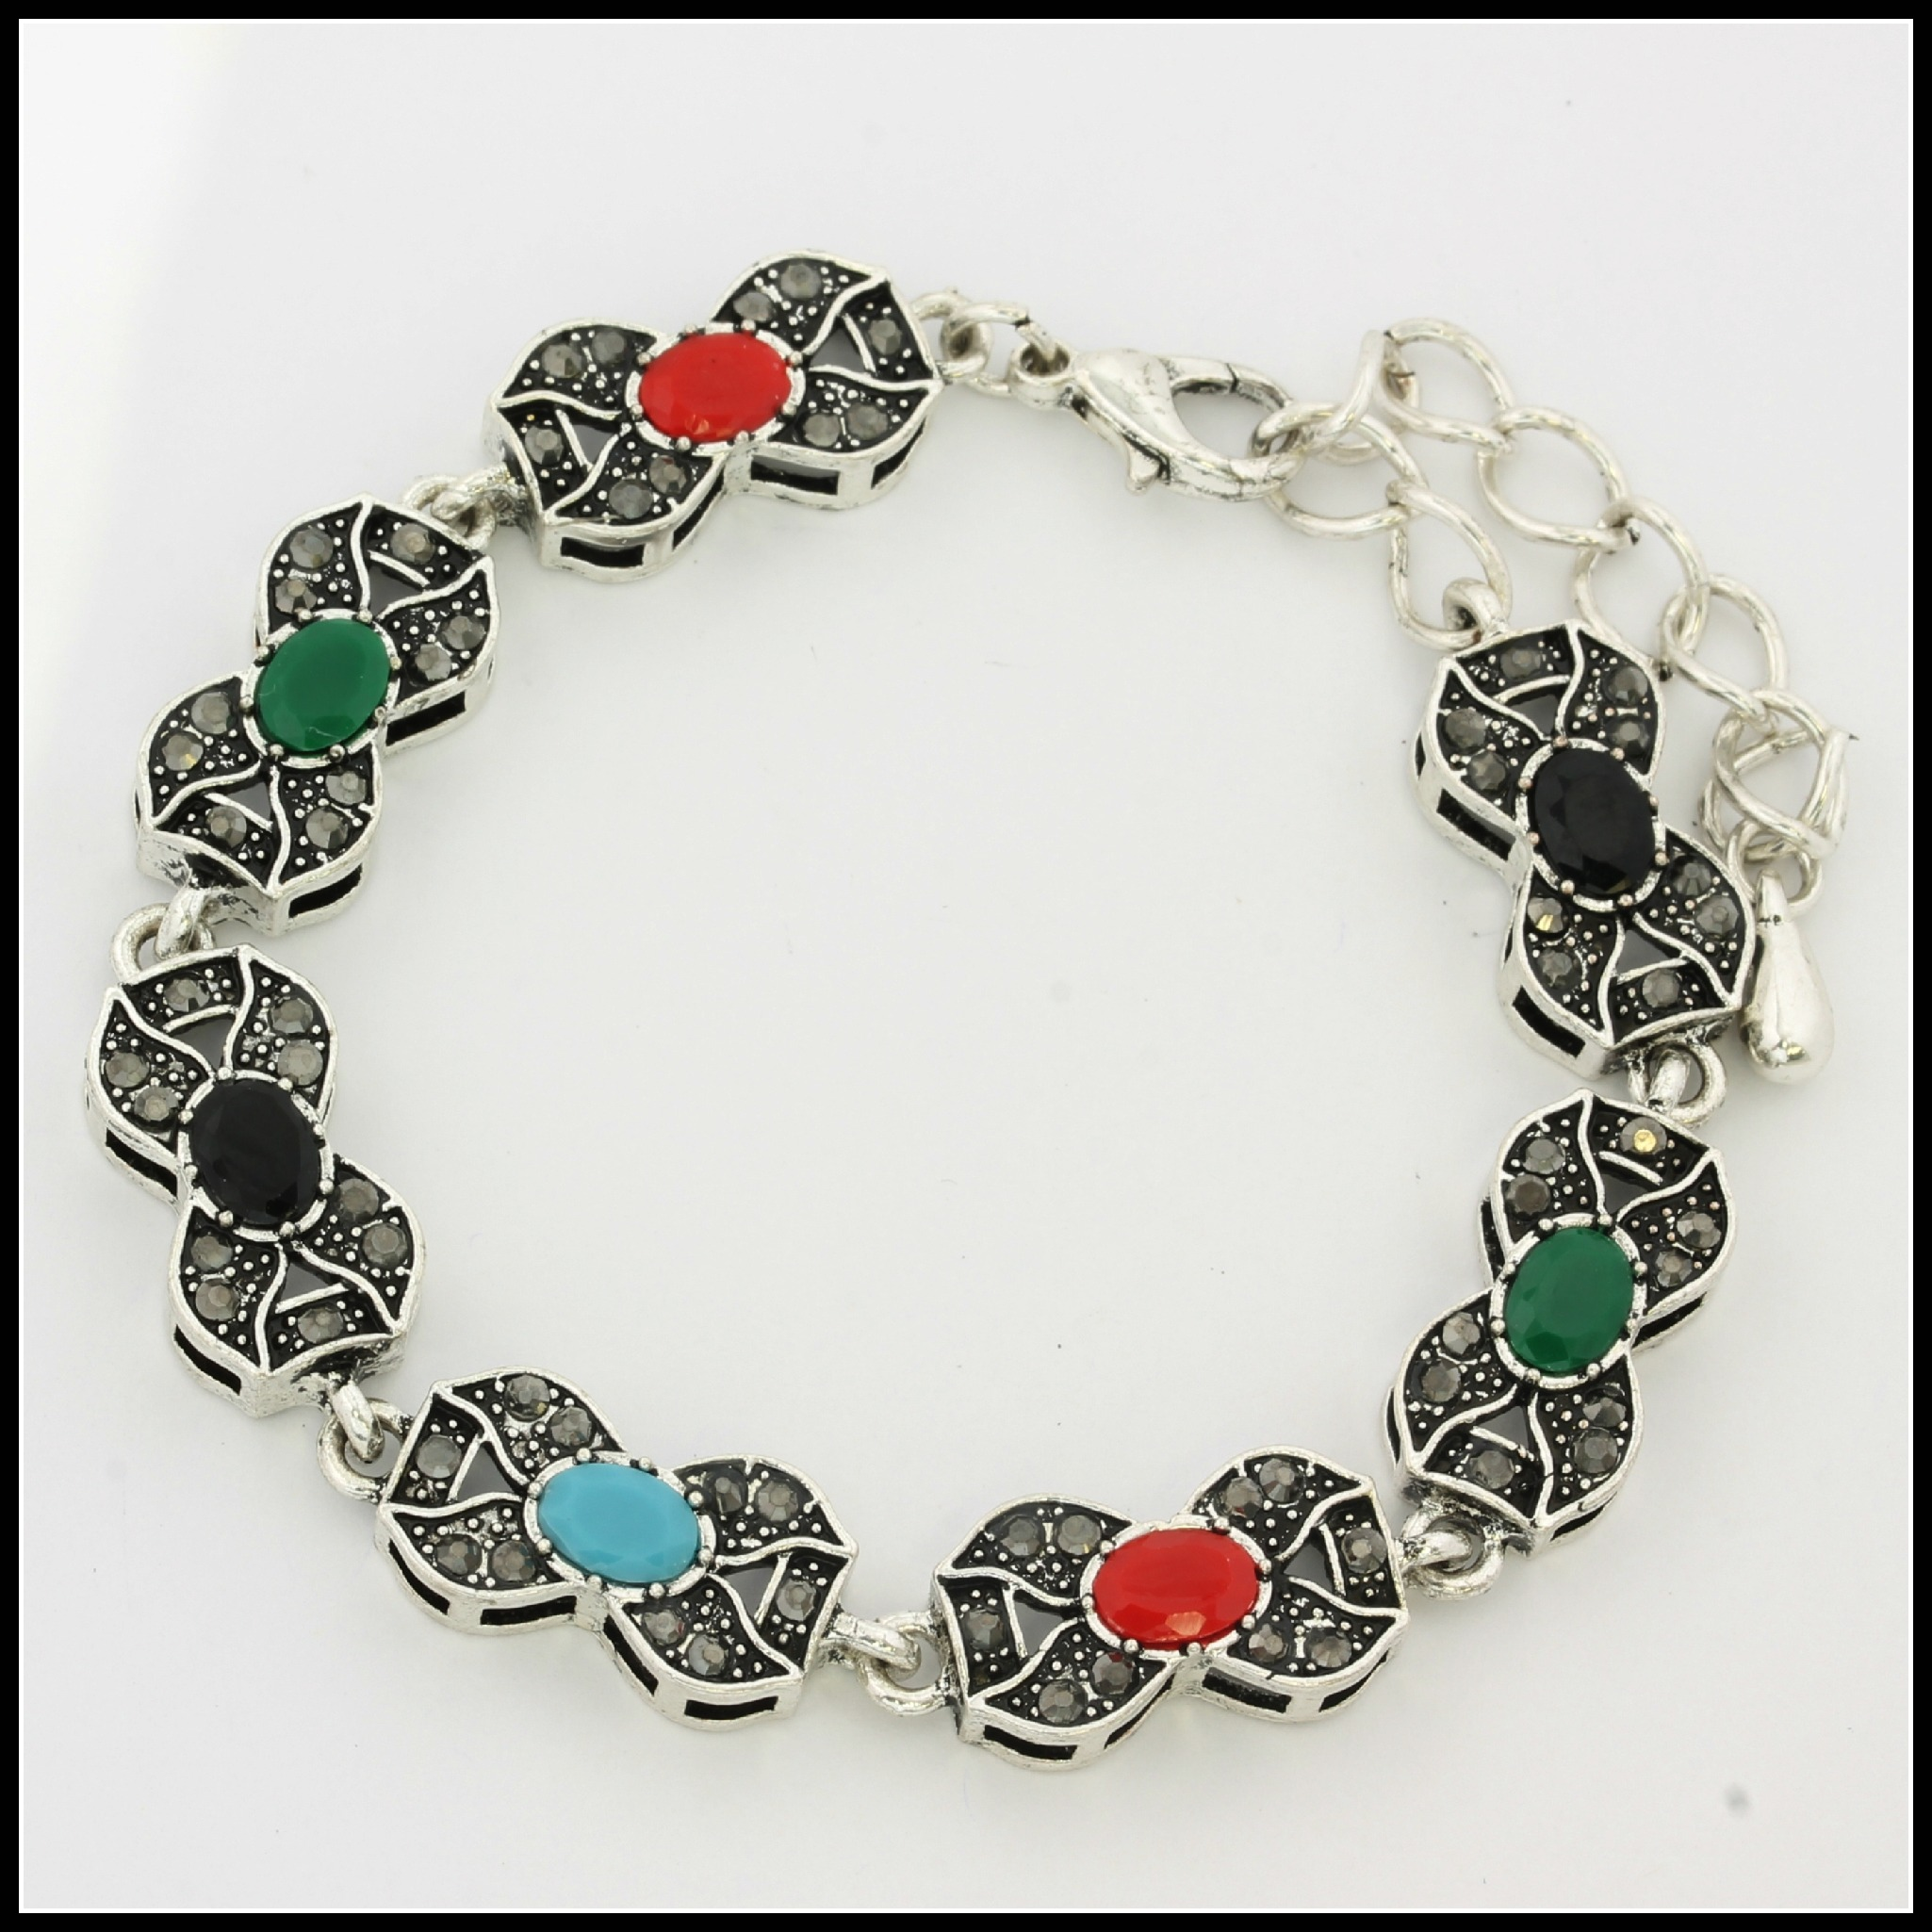 Fine Jewelry Br With 18k White Gold Overlay Multi Color Gemstones Bracelet